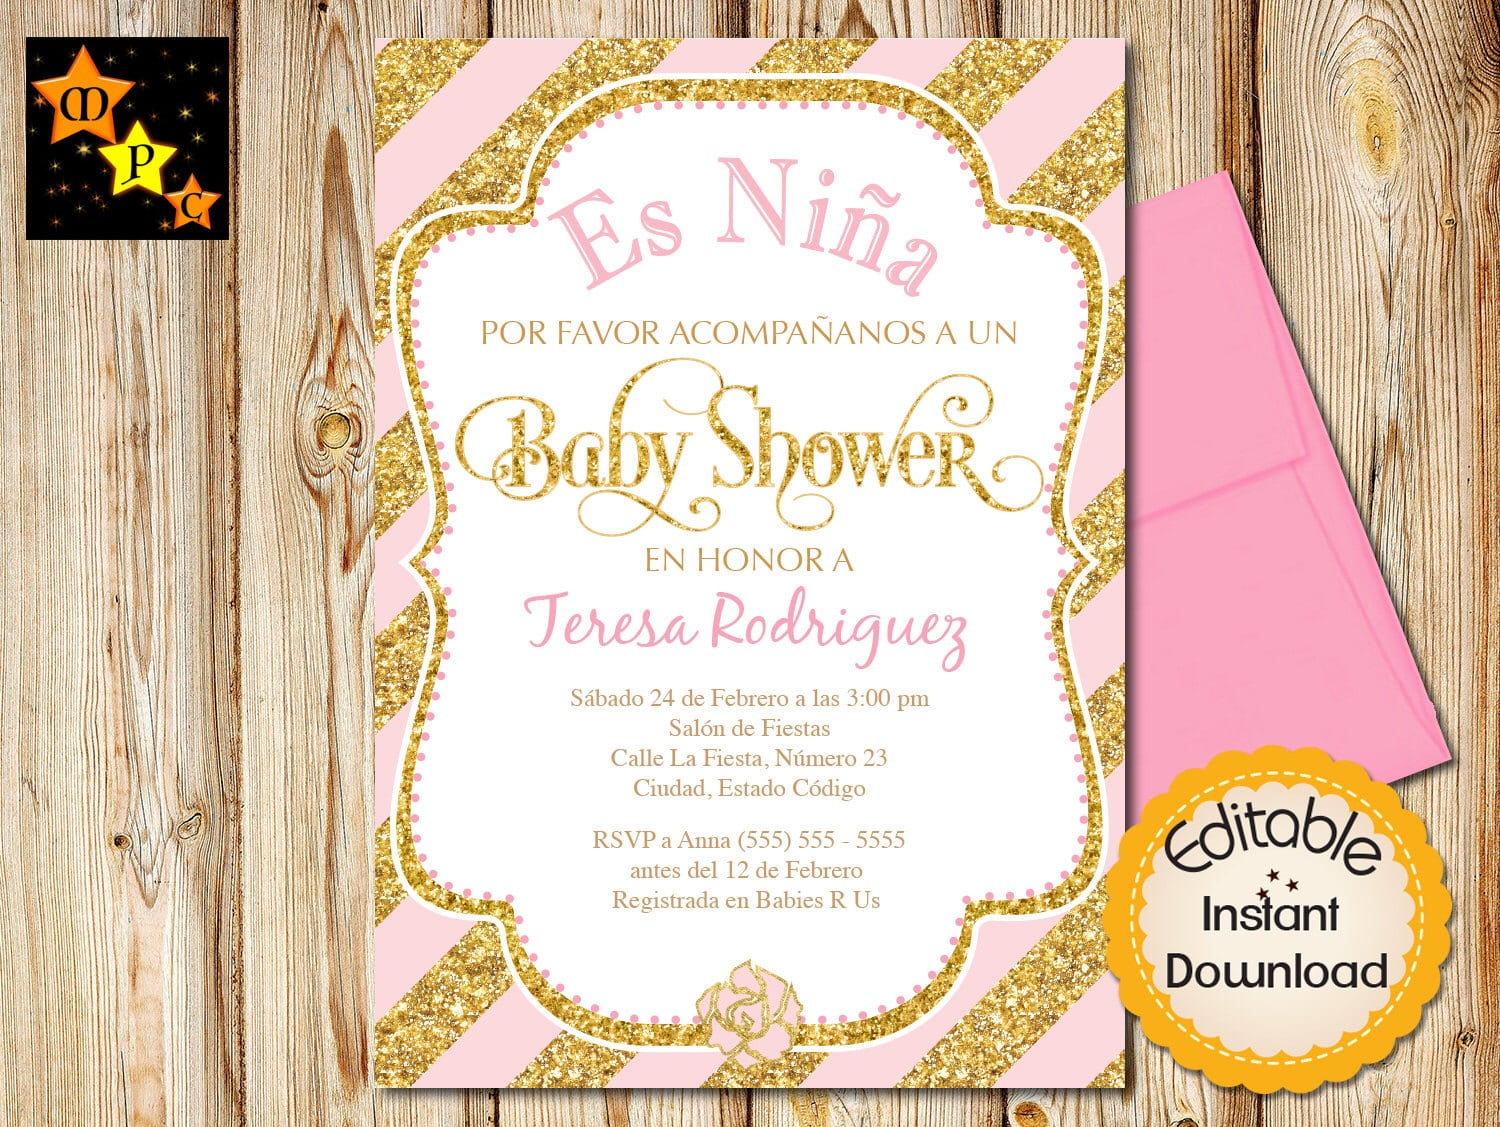 Spanish Baby Shower Invitation, Girl, Pink And Gold Elephant